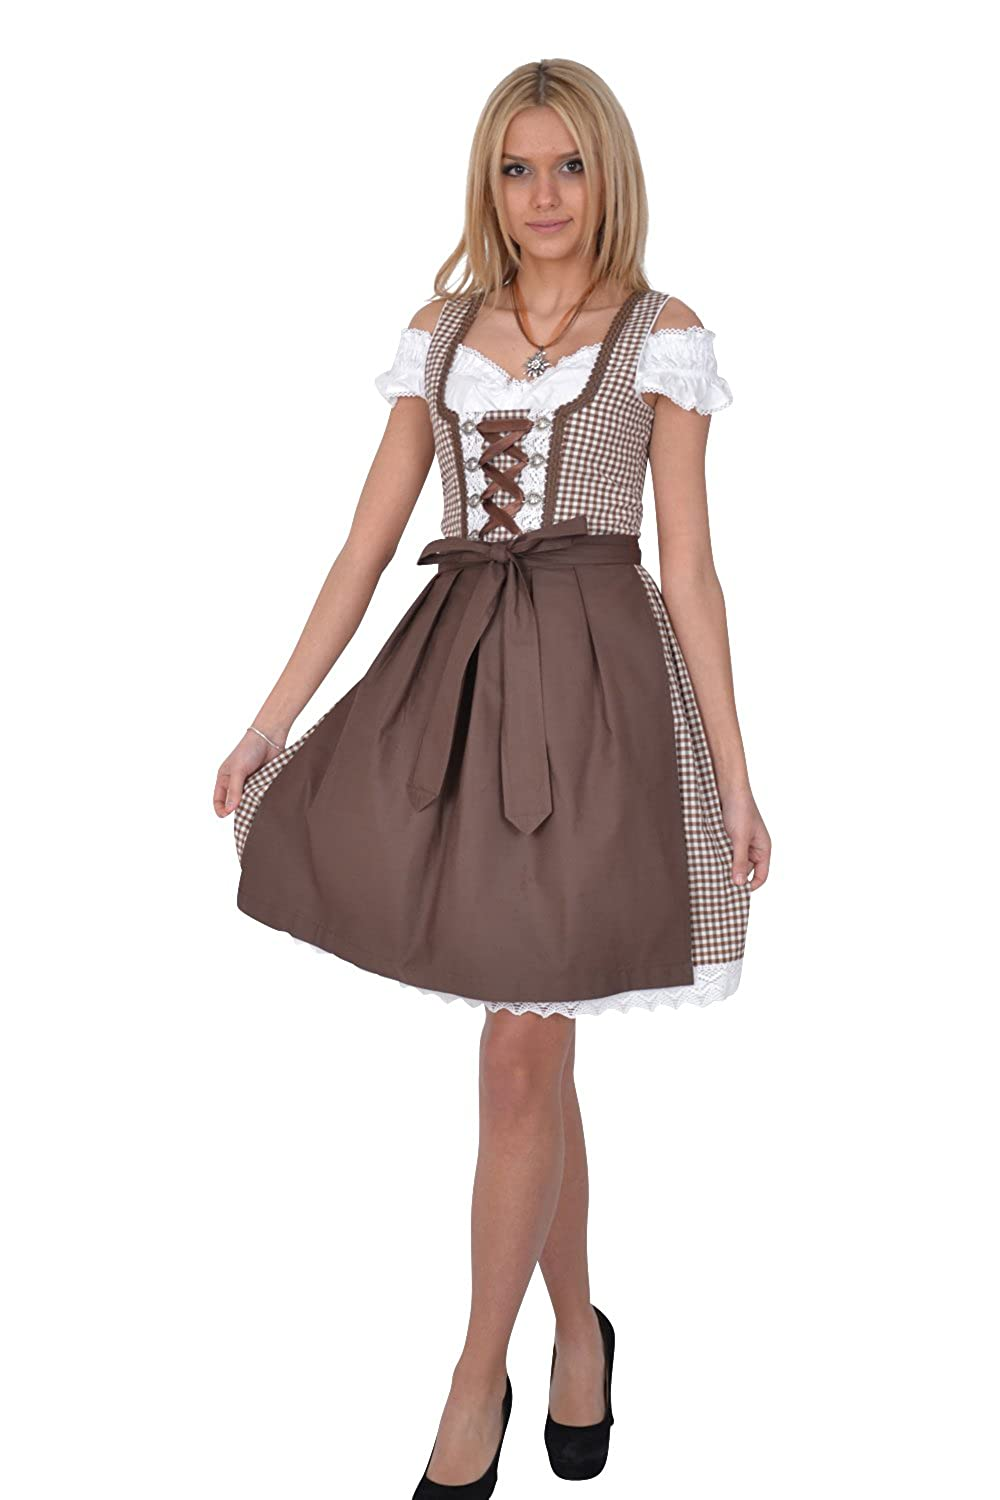 dirndl set trachtenkleid 283gt braun kariert g nstig kaufen. Black Bedroom Furniture Sets. Home Design Ideas